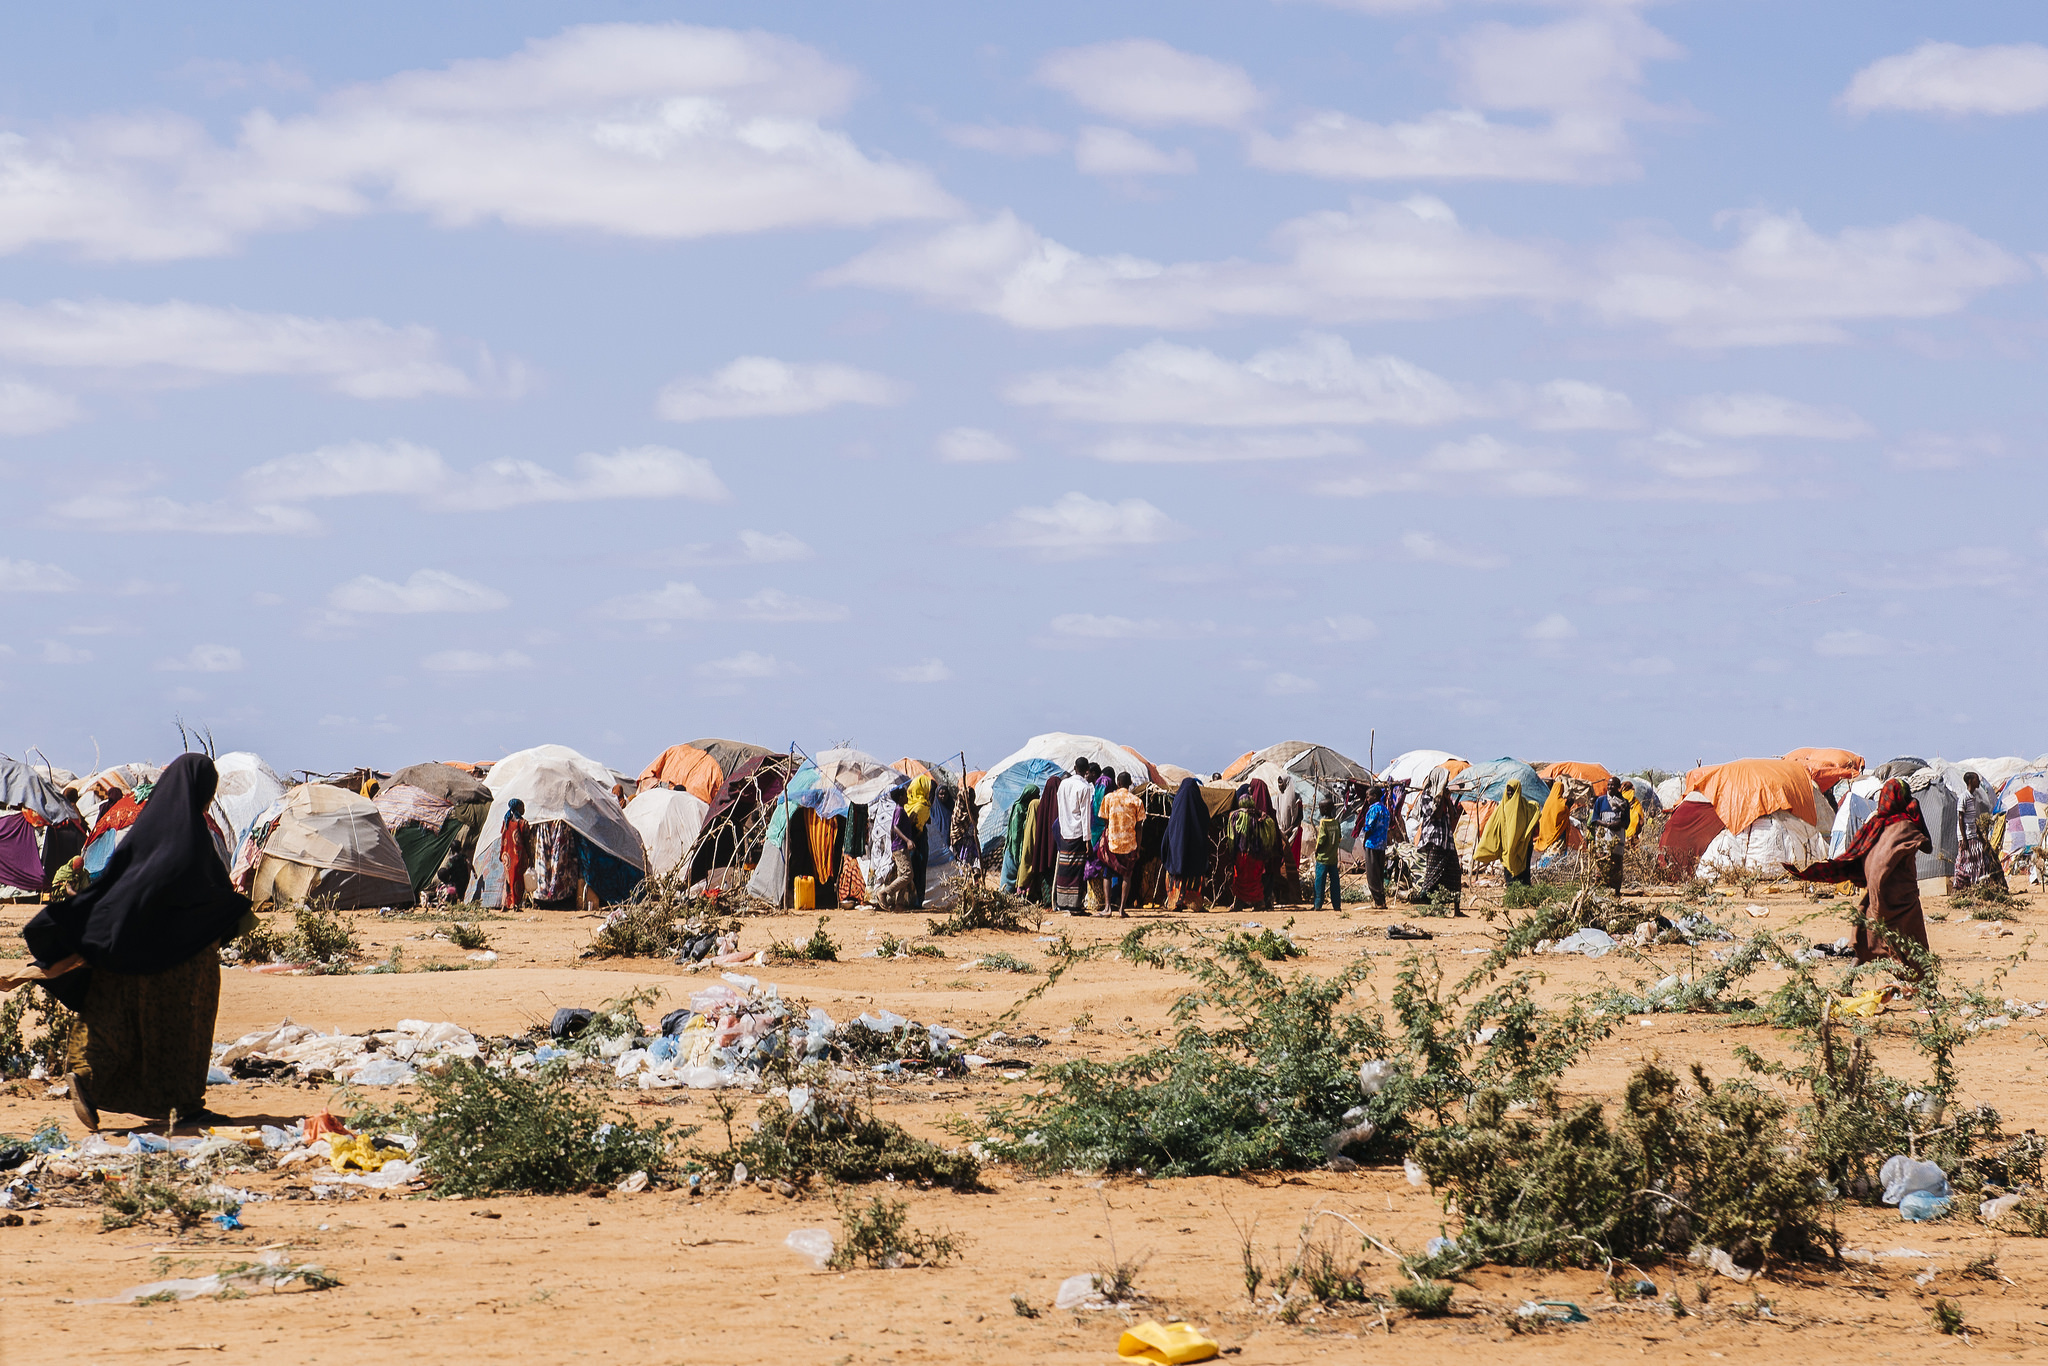 Somalia refugee camp